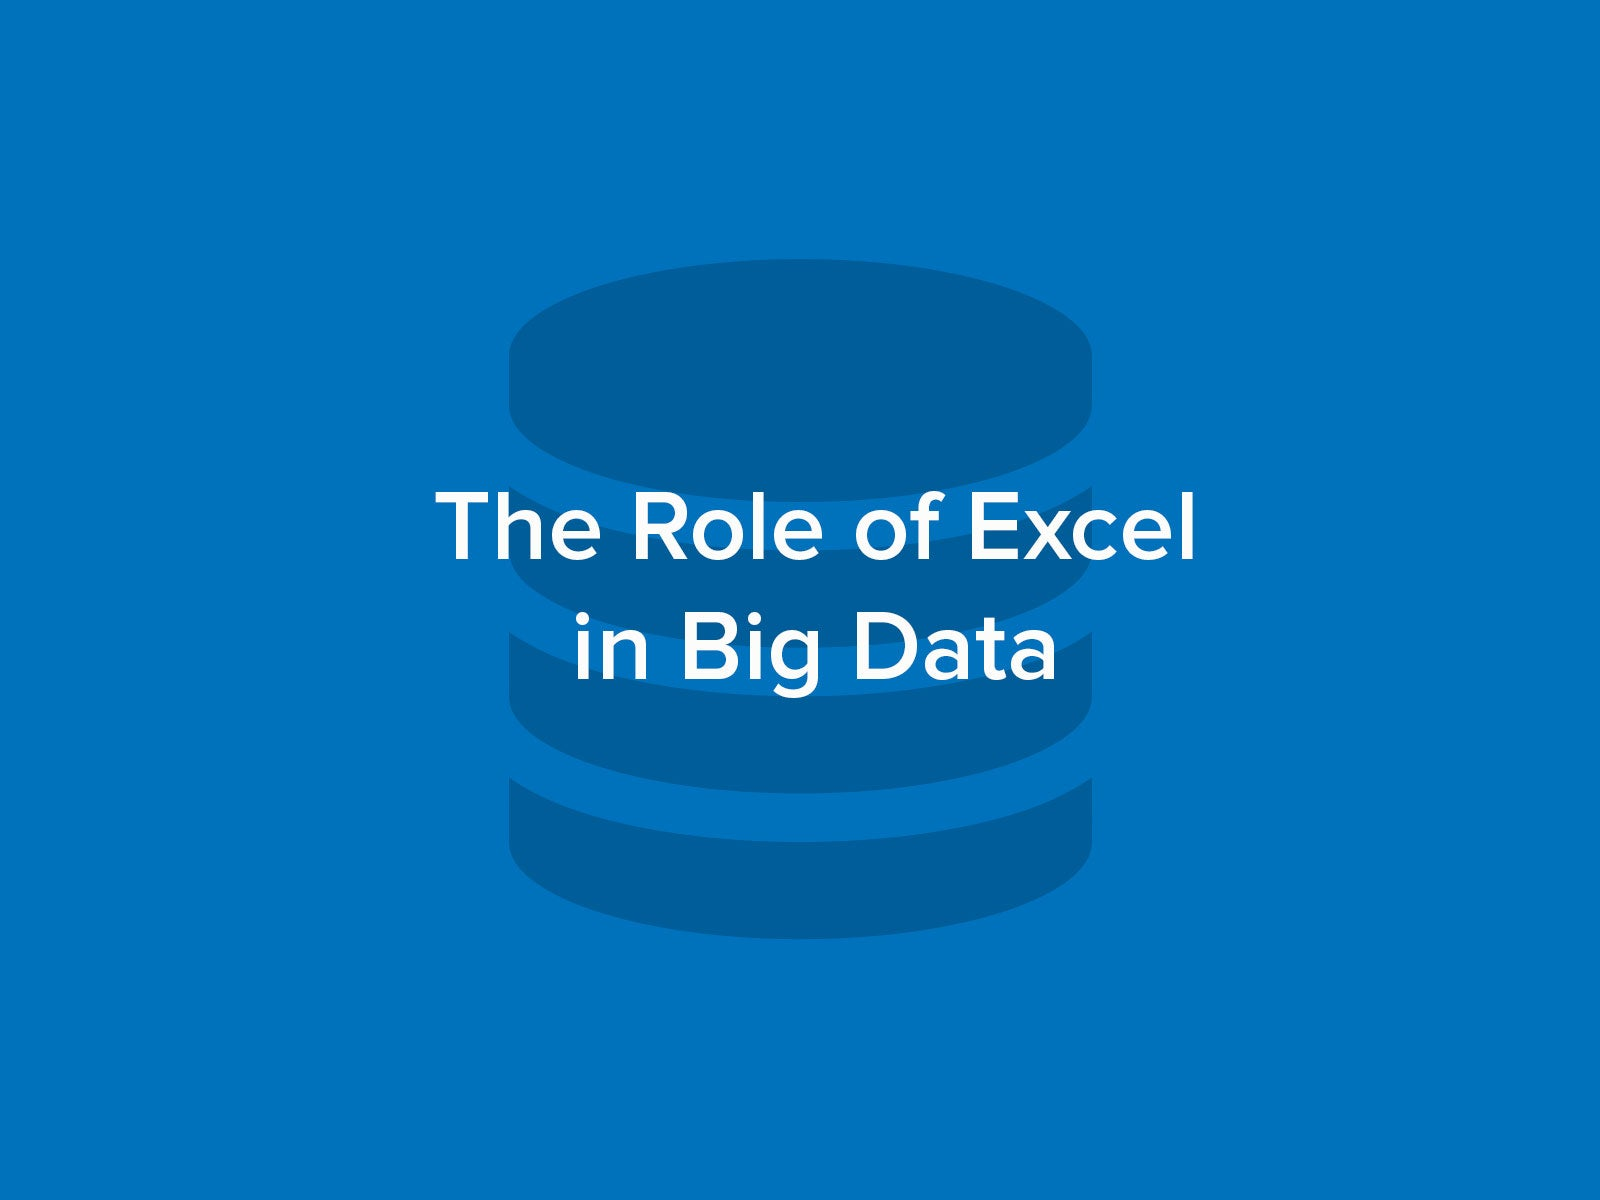 The Role of Excel in Big Data